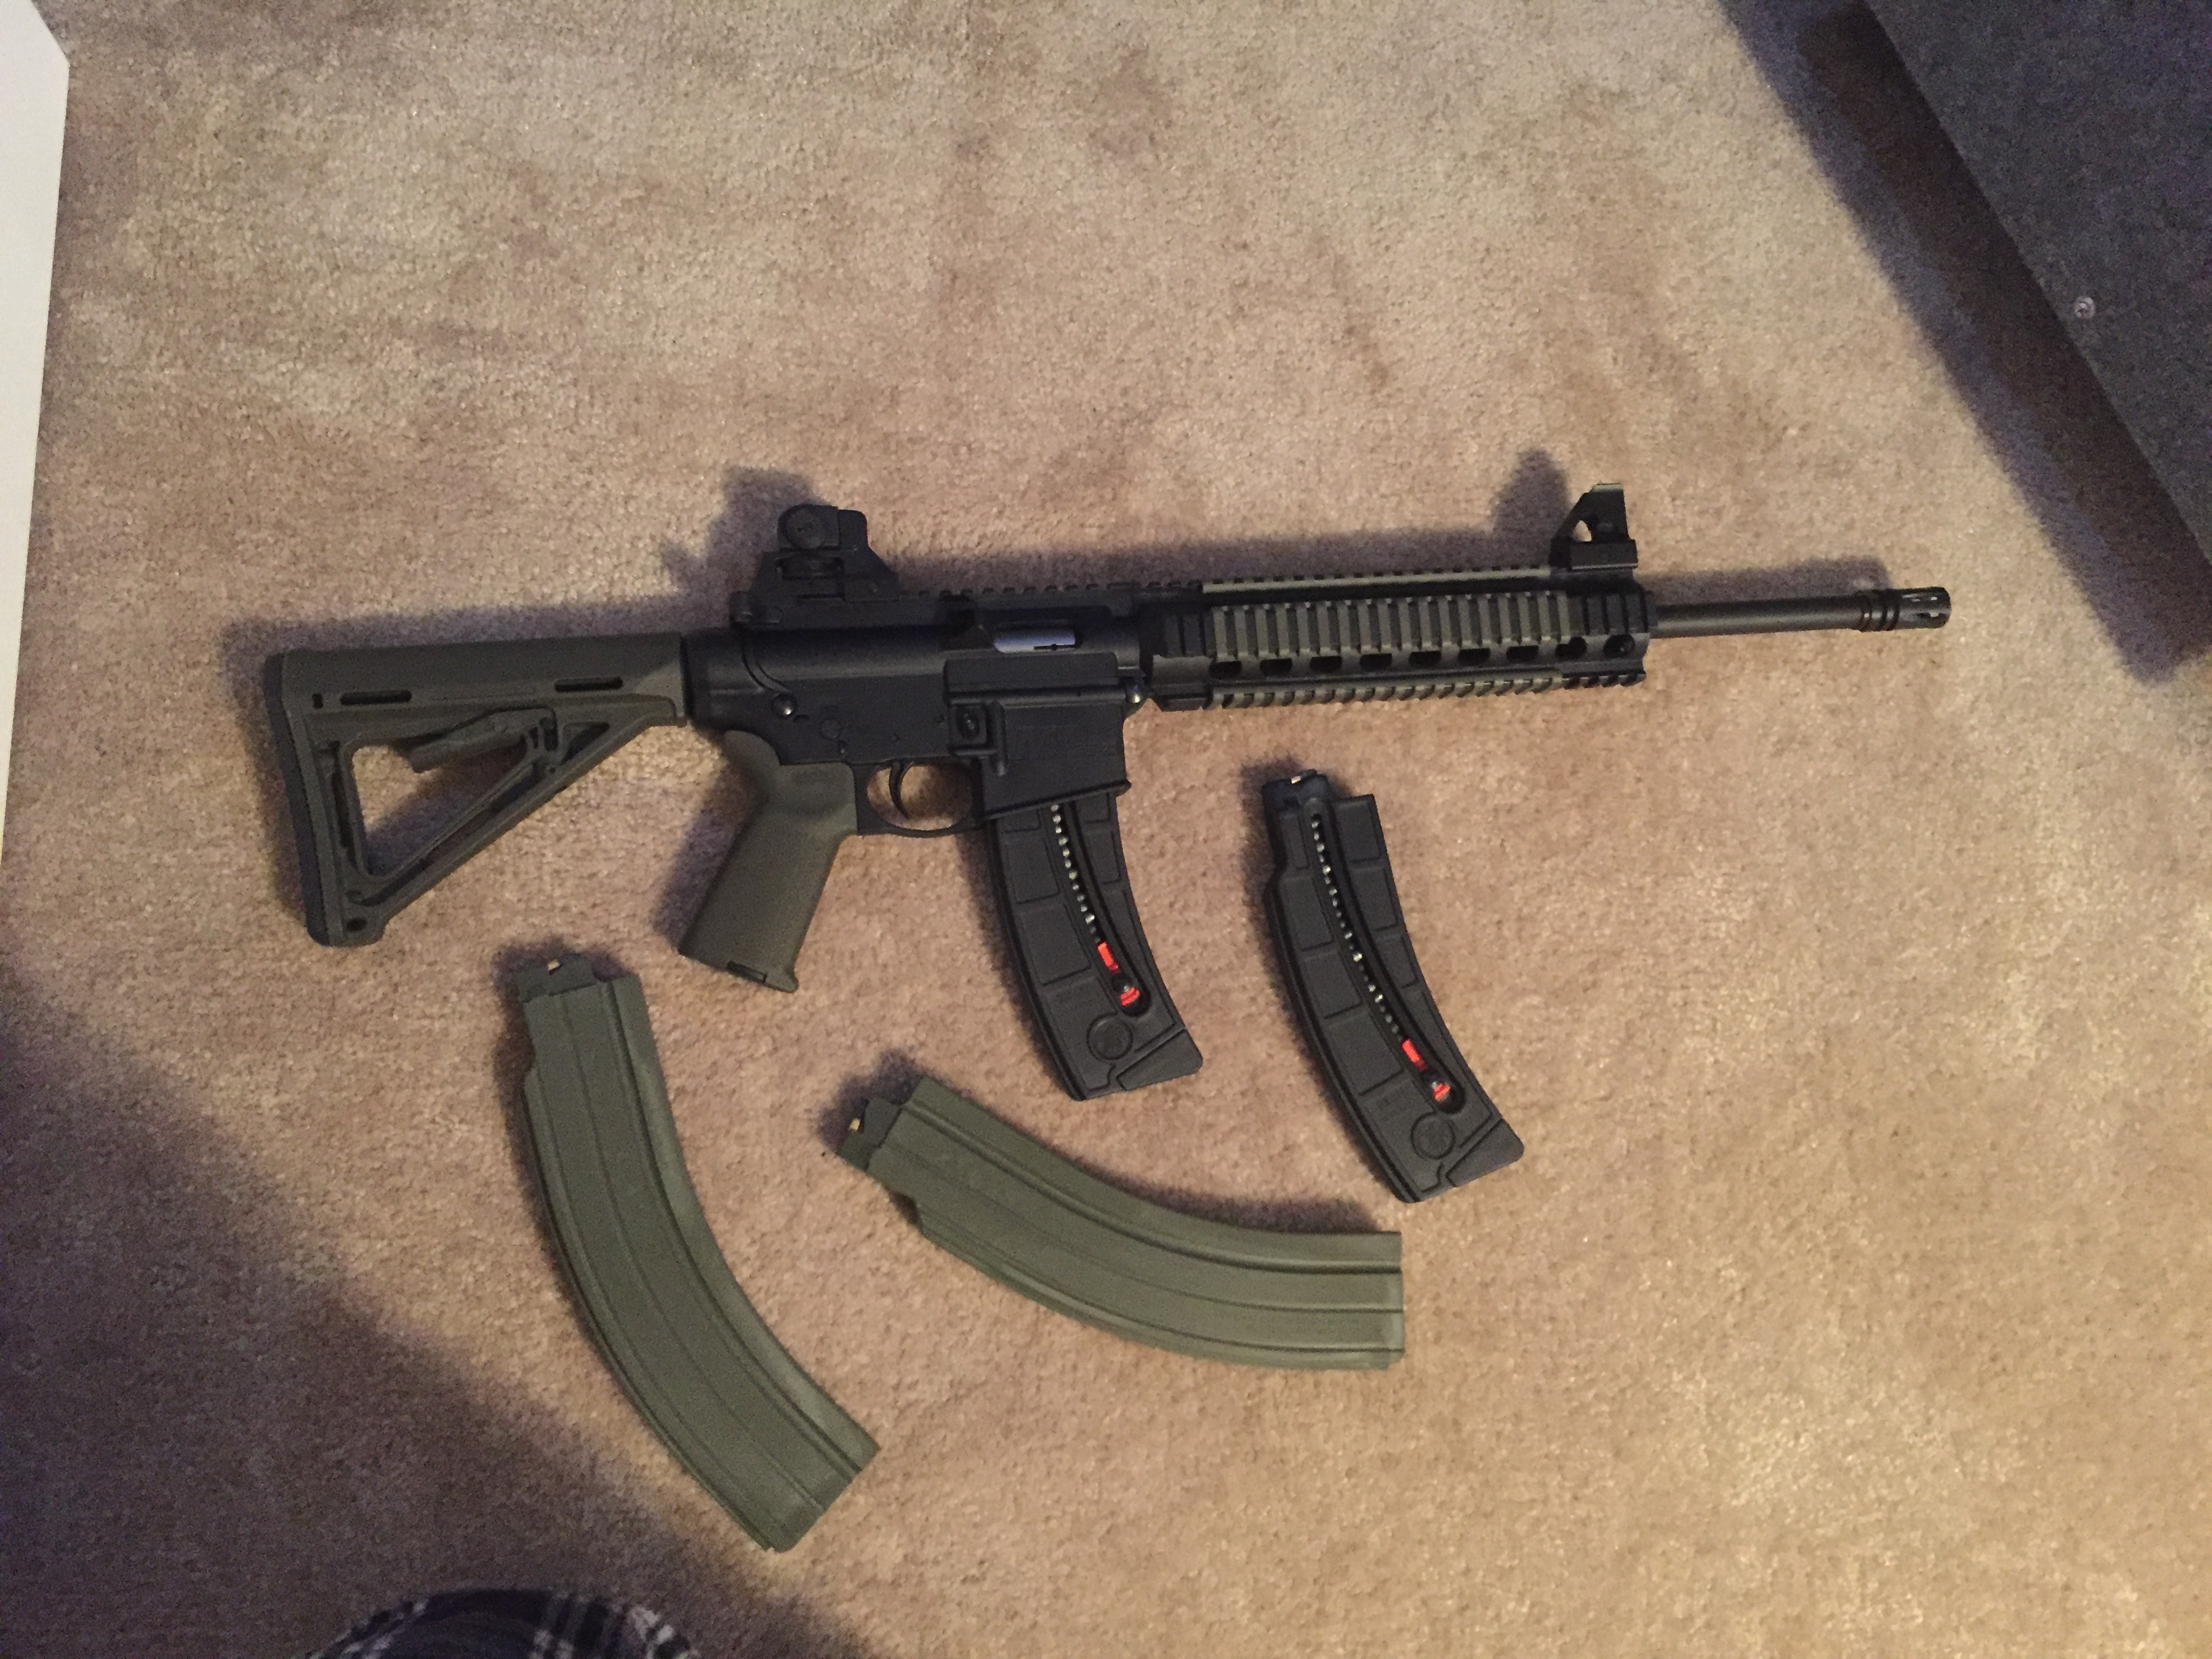 Sold WTS S&W MP15 22 w 4 mags and OD green furniture